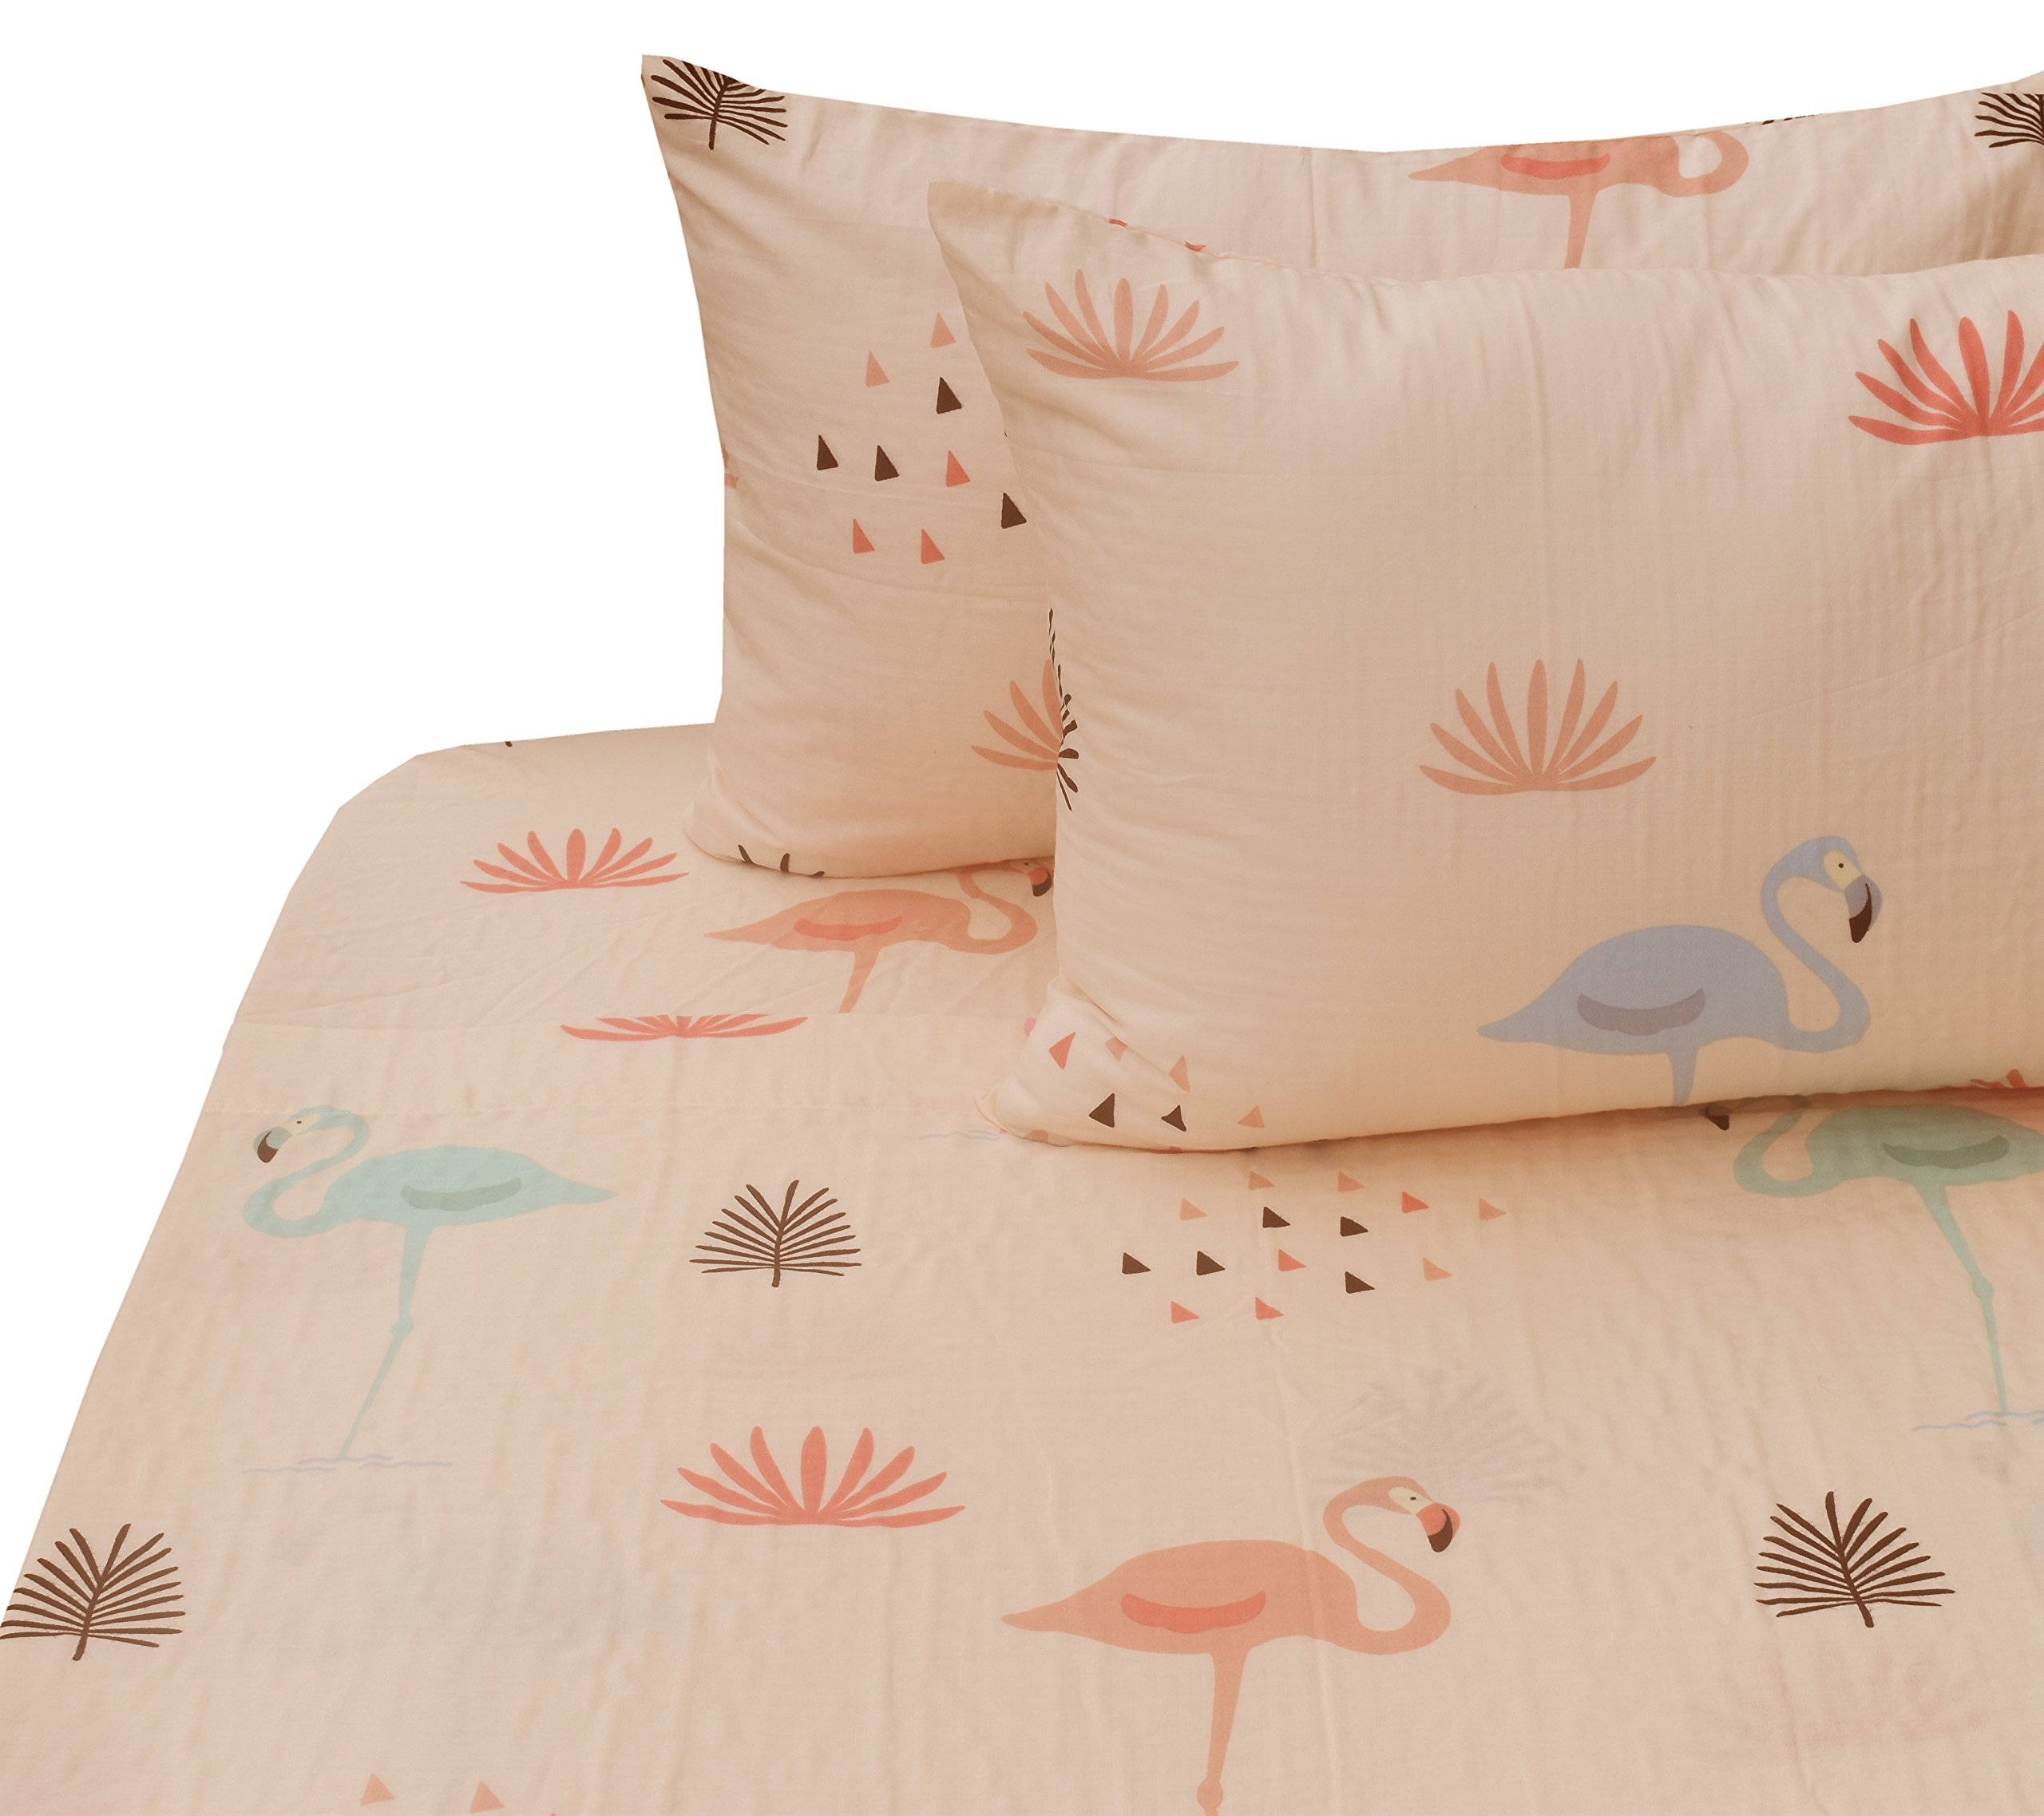 J-pinno Girls Flamingo Cotton Muslin Bed Sheets Set Twin, Flat Sheet & Fitted Sheet & Pillowcase Natural Hypoallergenic Bedding Set Gift (4, Twin)